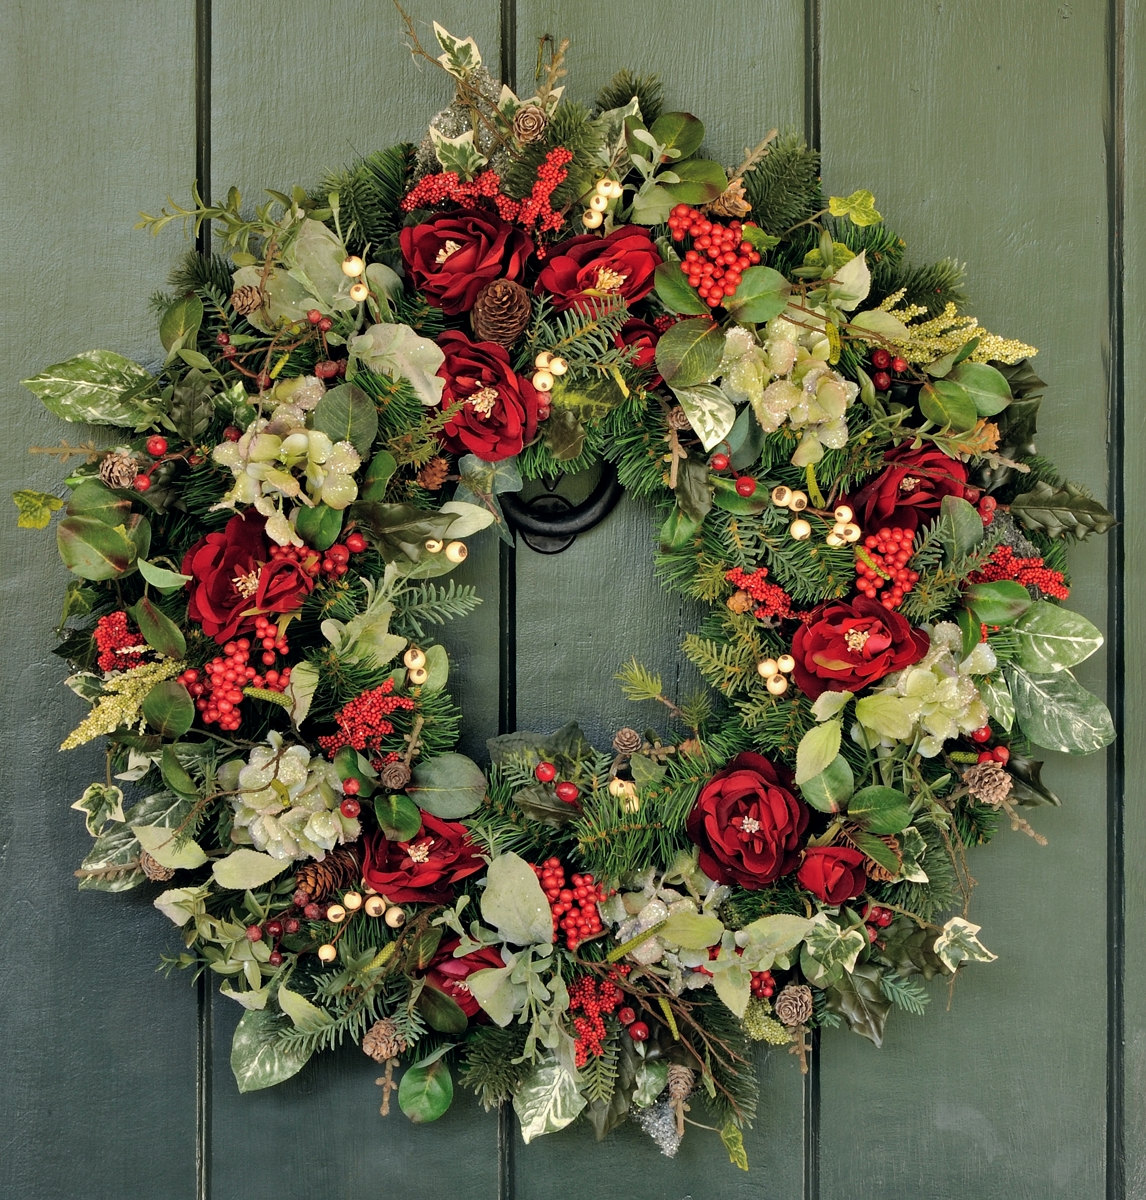 Christmas Wreaths for Sale - Friday 11 December